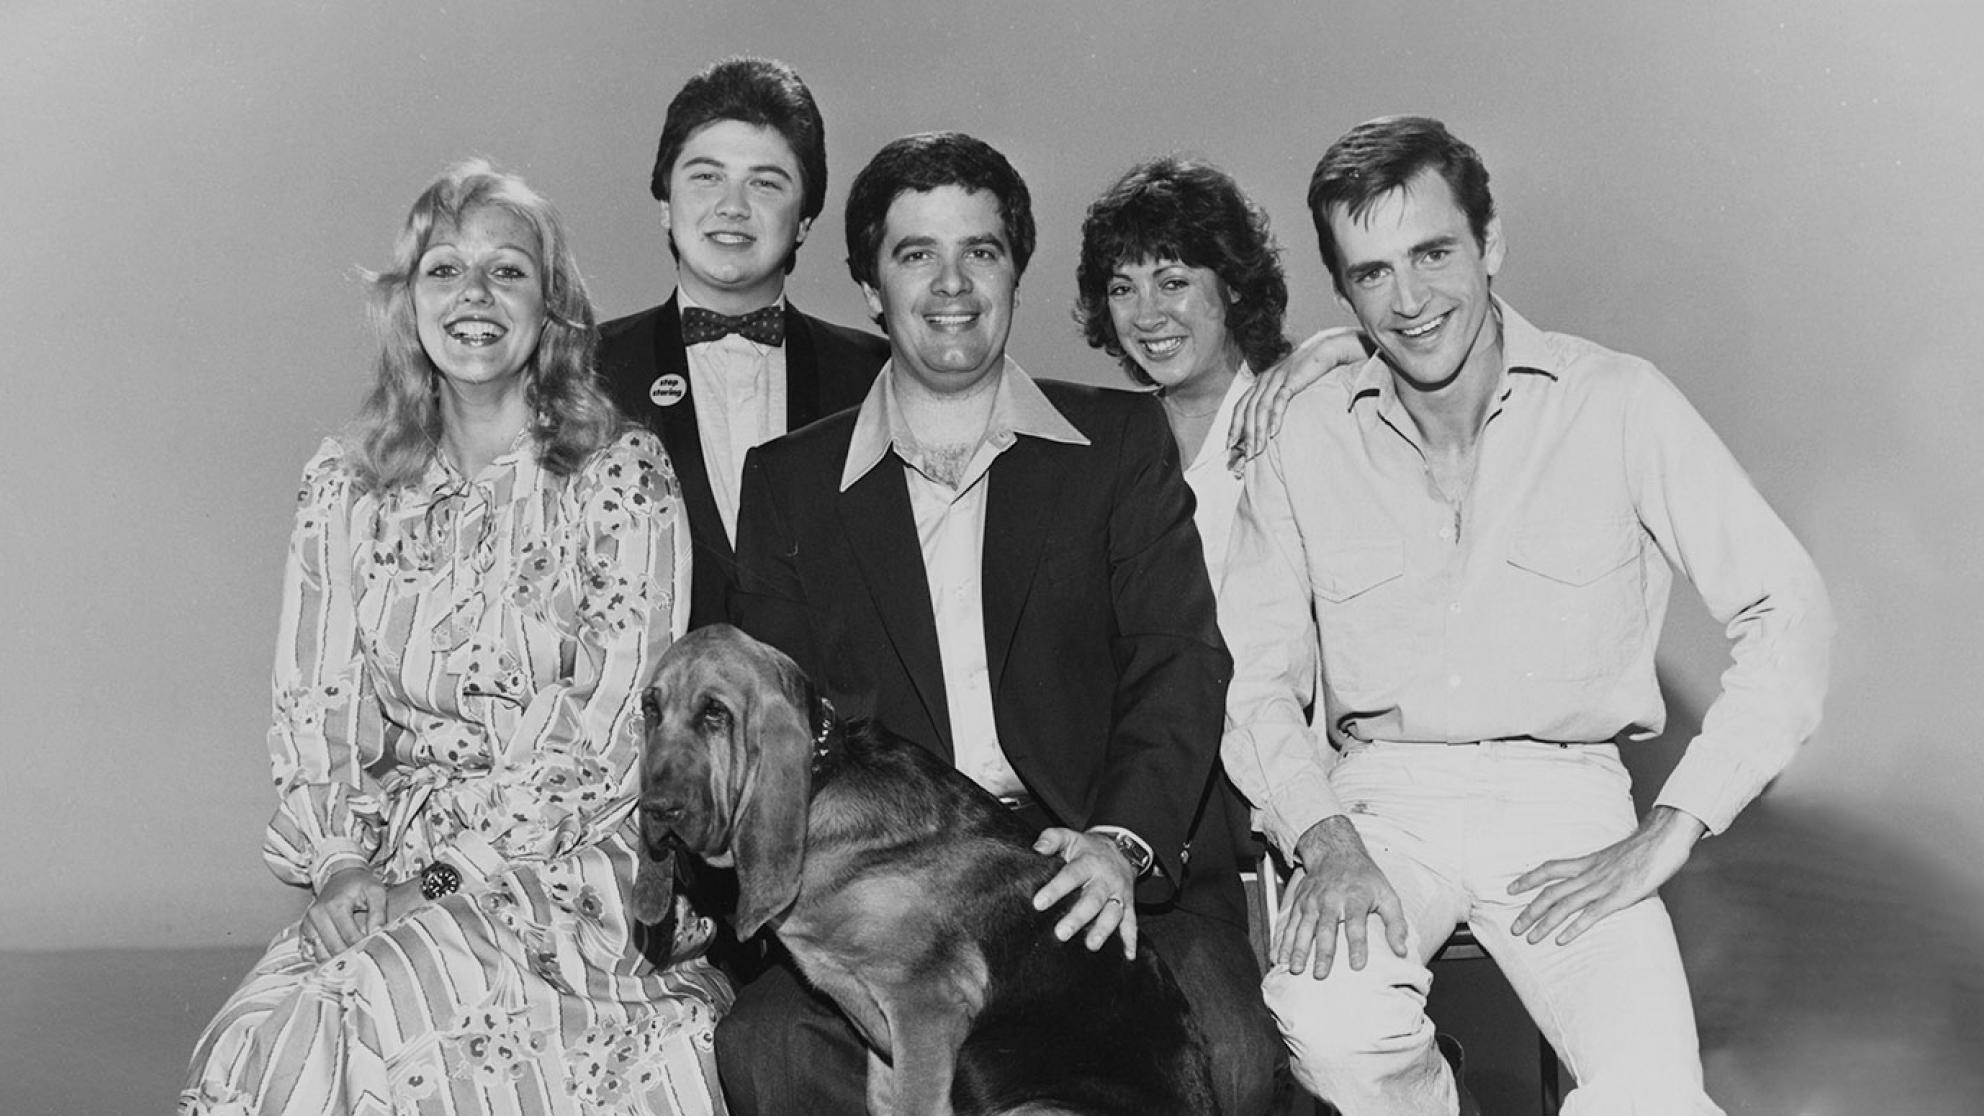 Simon Townsend's Wonder World Reporters from 1979, from left to right: Sandy Mauger, Jono Coleman, Simon Townsend, Angela Catterns and Adam Bowen. Front is Woodrow the Bloodhound